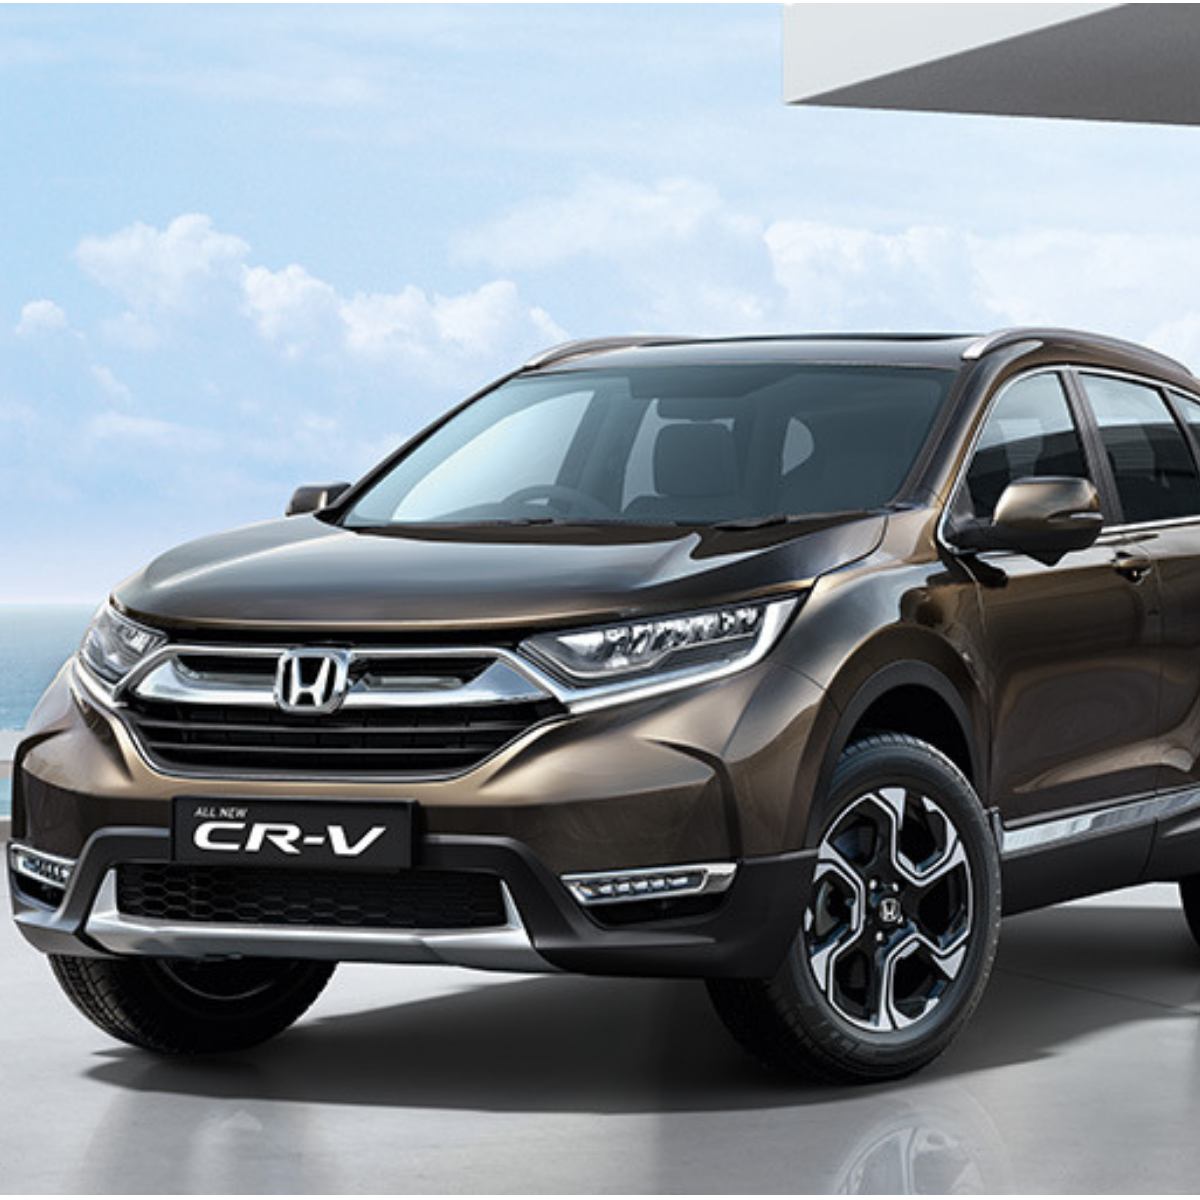 Rs 28.15 lakhs Worth New Honda CRV launched in India, Gets